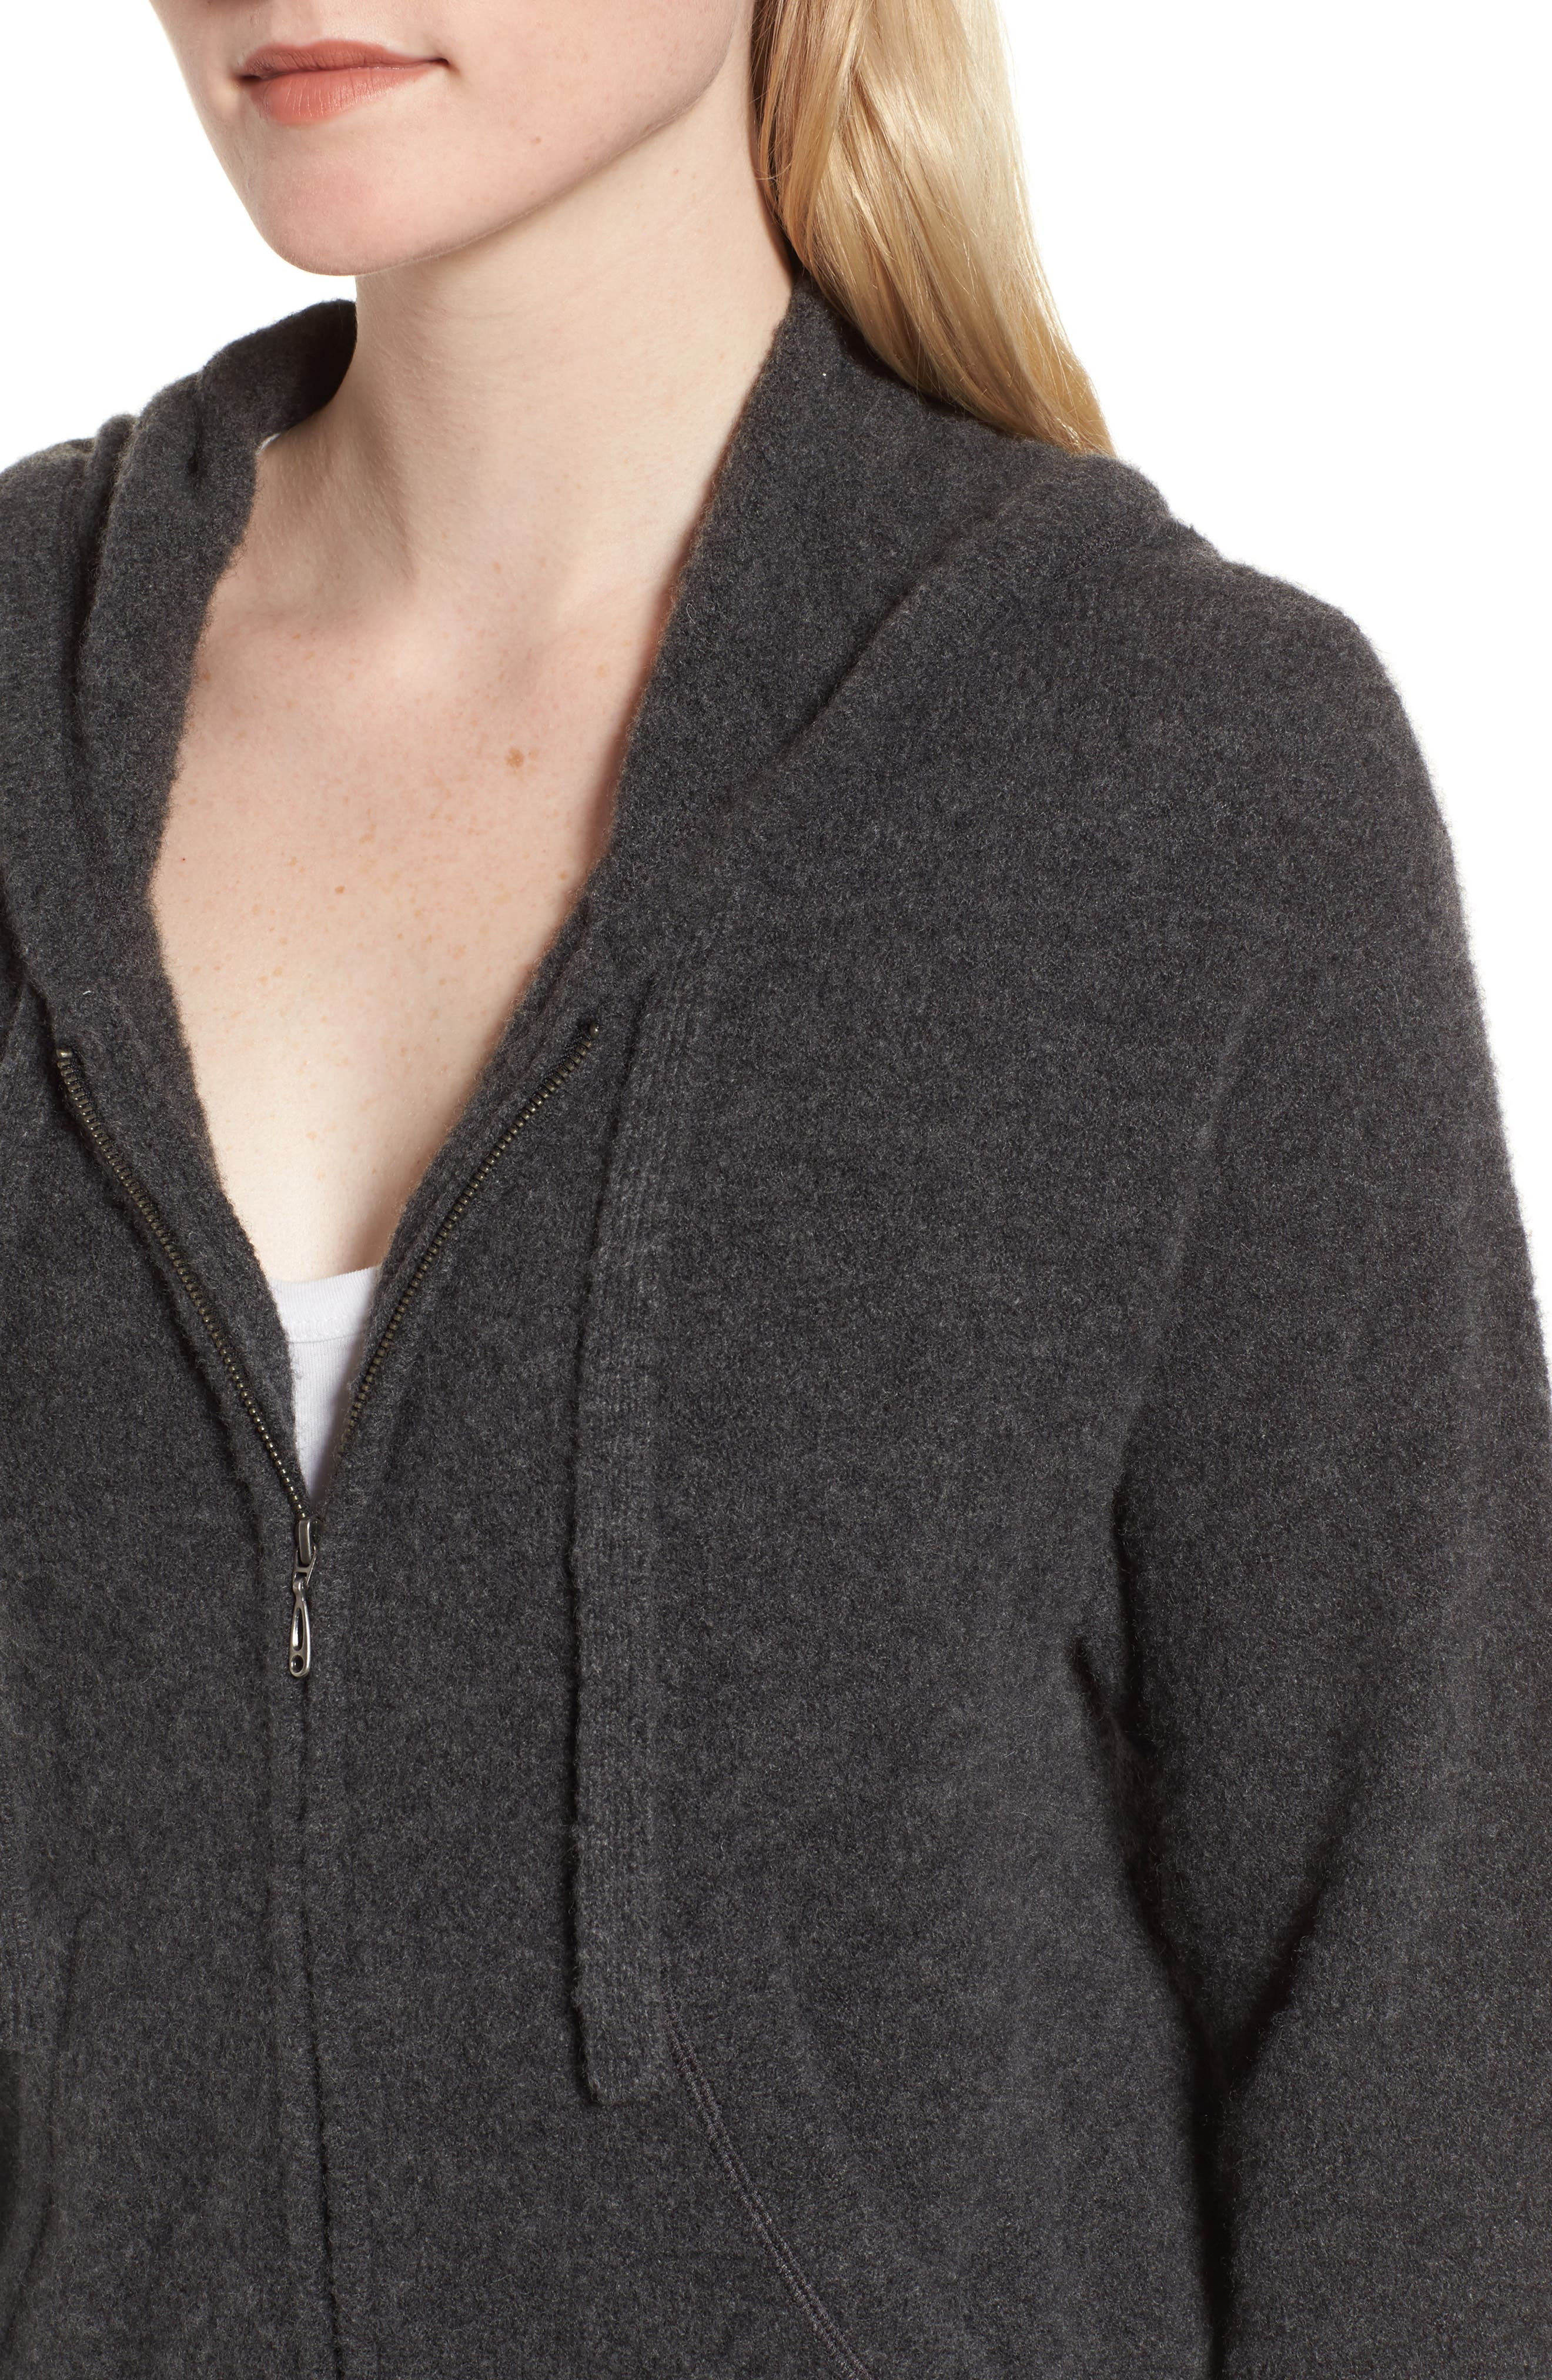 Brushed Cashmere Zip Hoodie,                             Alternate thumbnail 4, color,